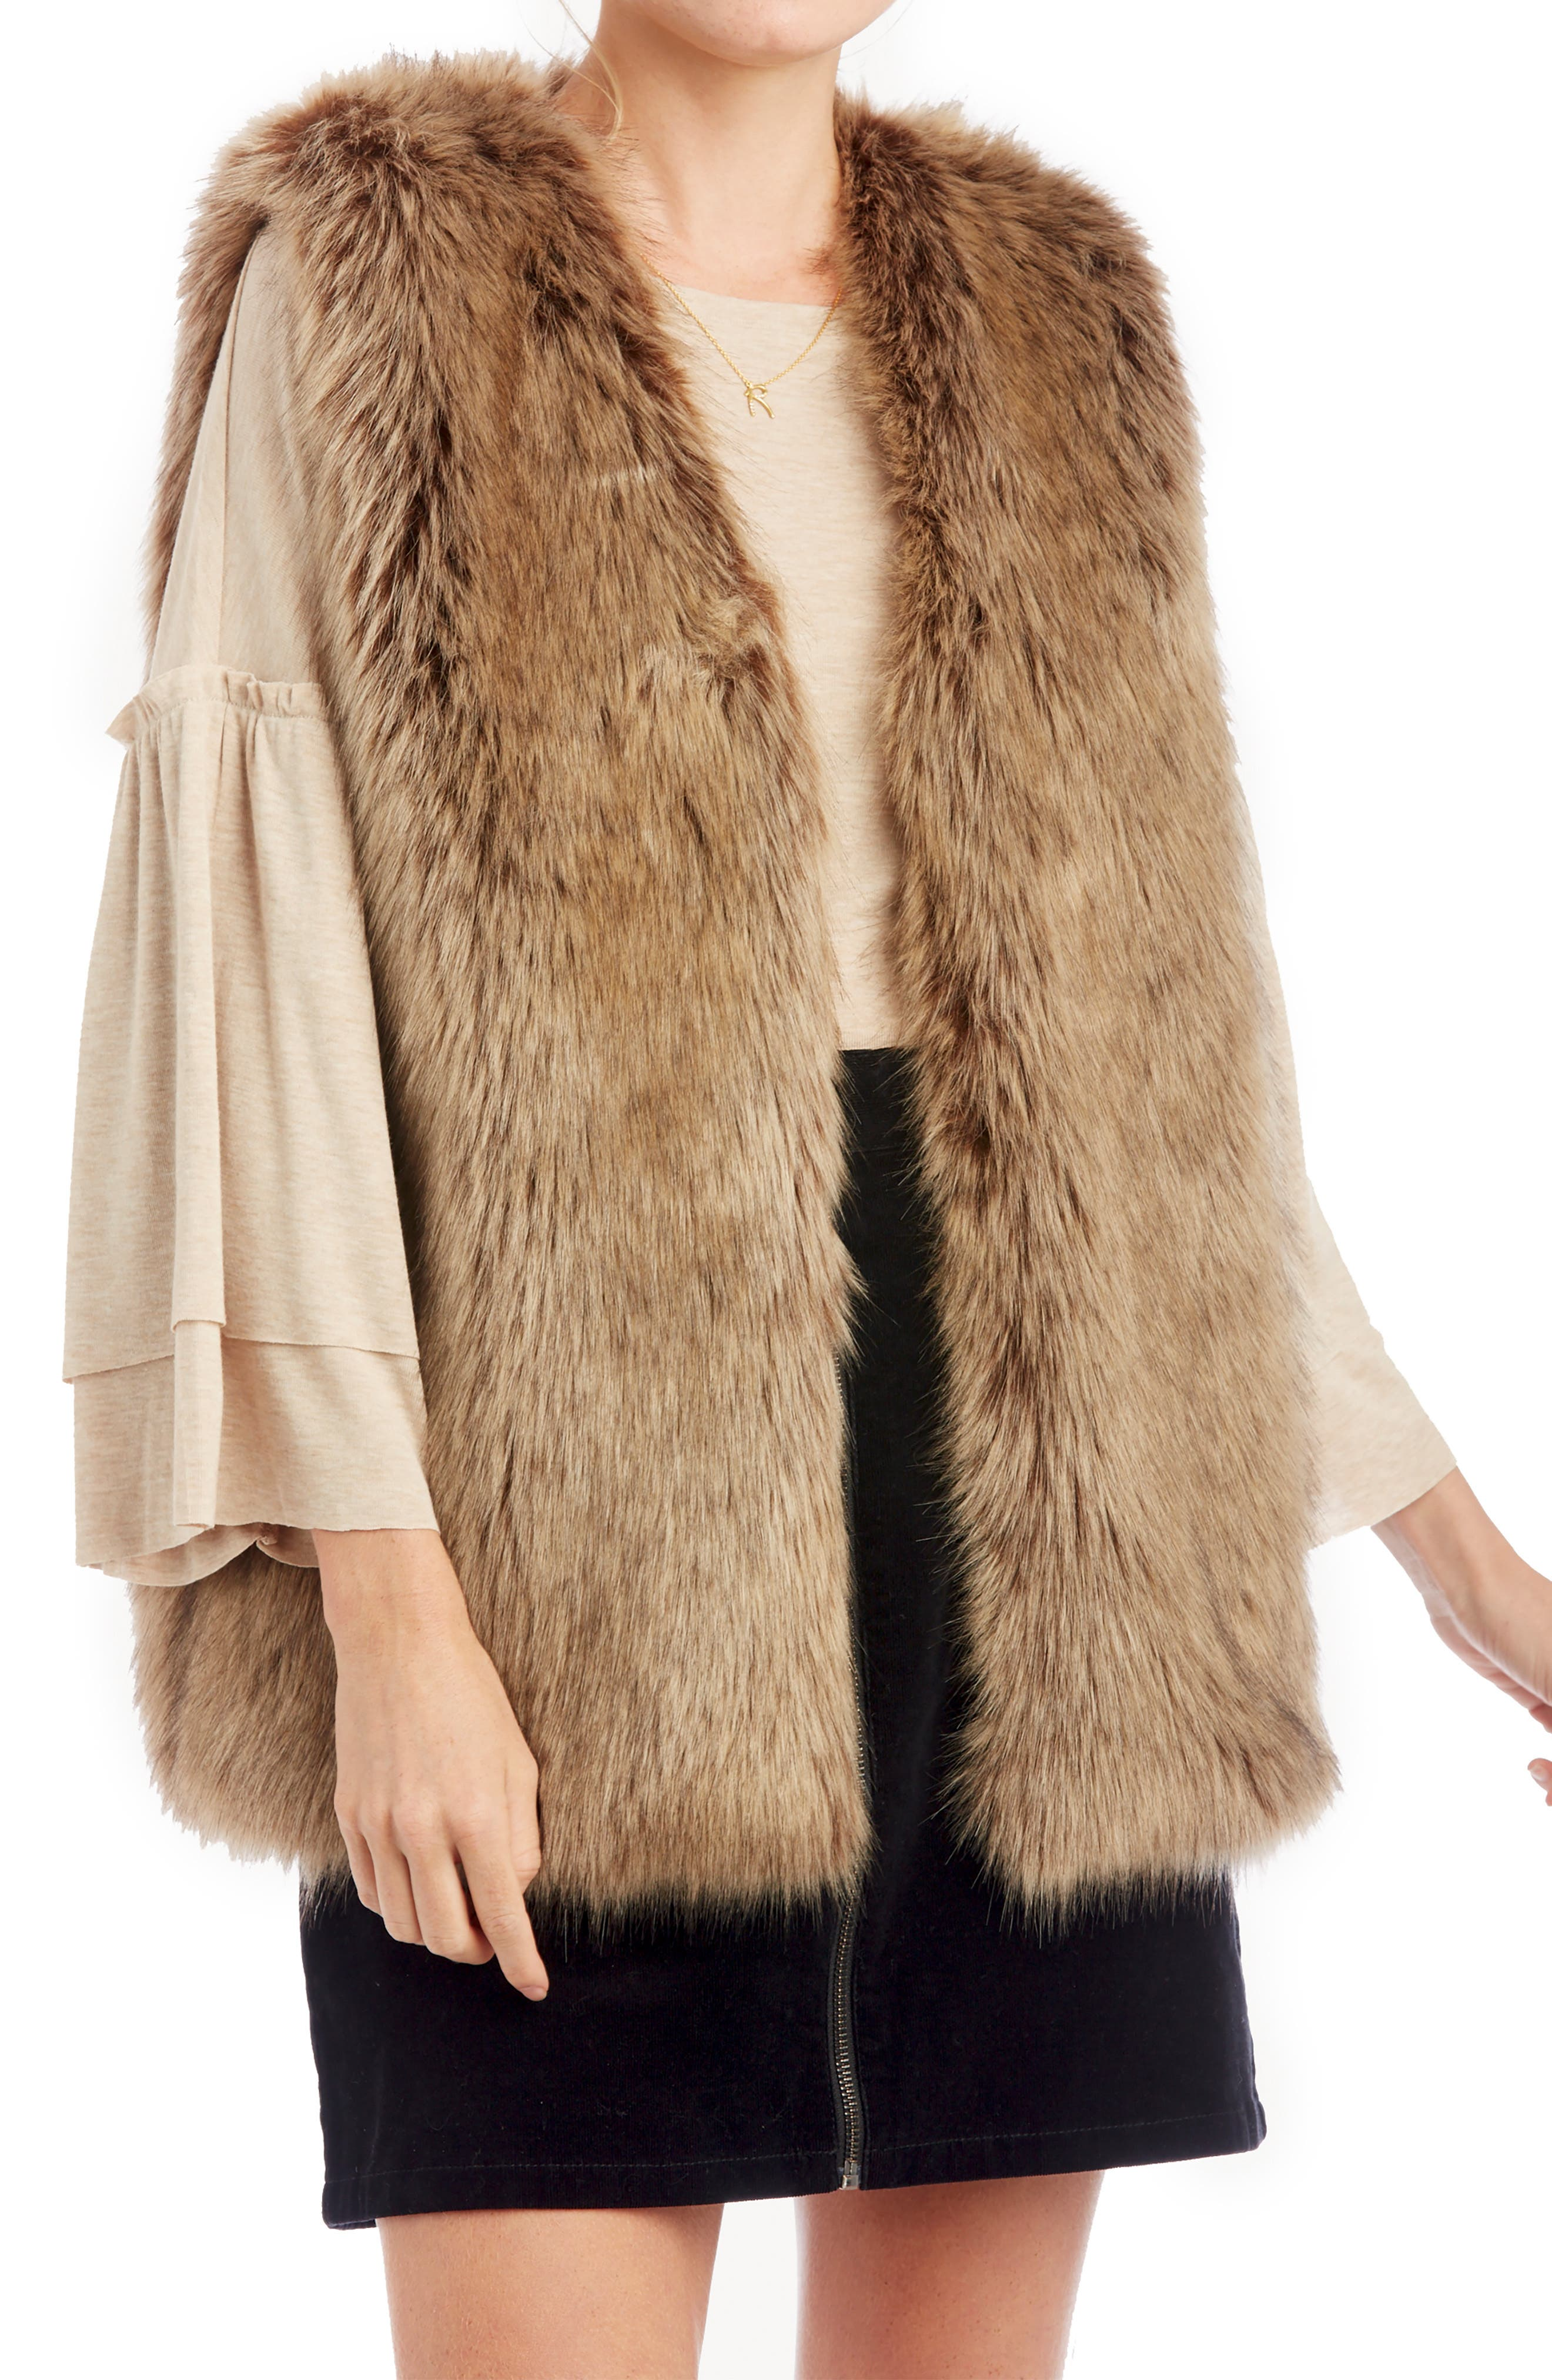 1960s Coats and Jackets Womens Sole Society Faux Fur Vest $79.95 AT vintagedancer.com